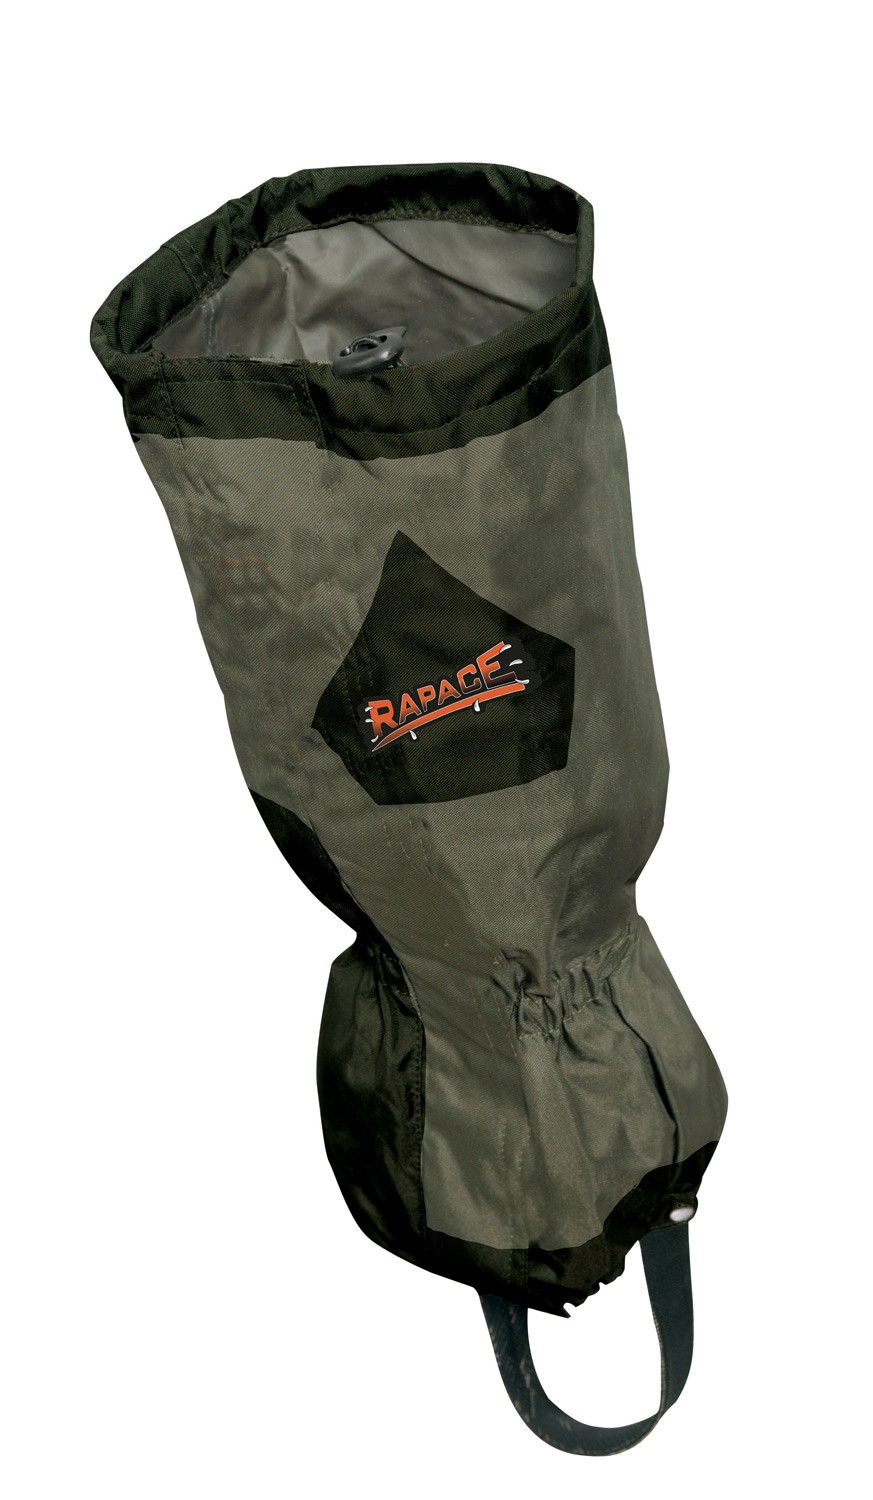 Guêtres de chasse prohunt rapace, made in chasse - equipe...